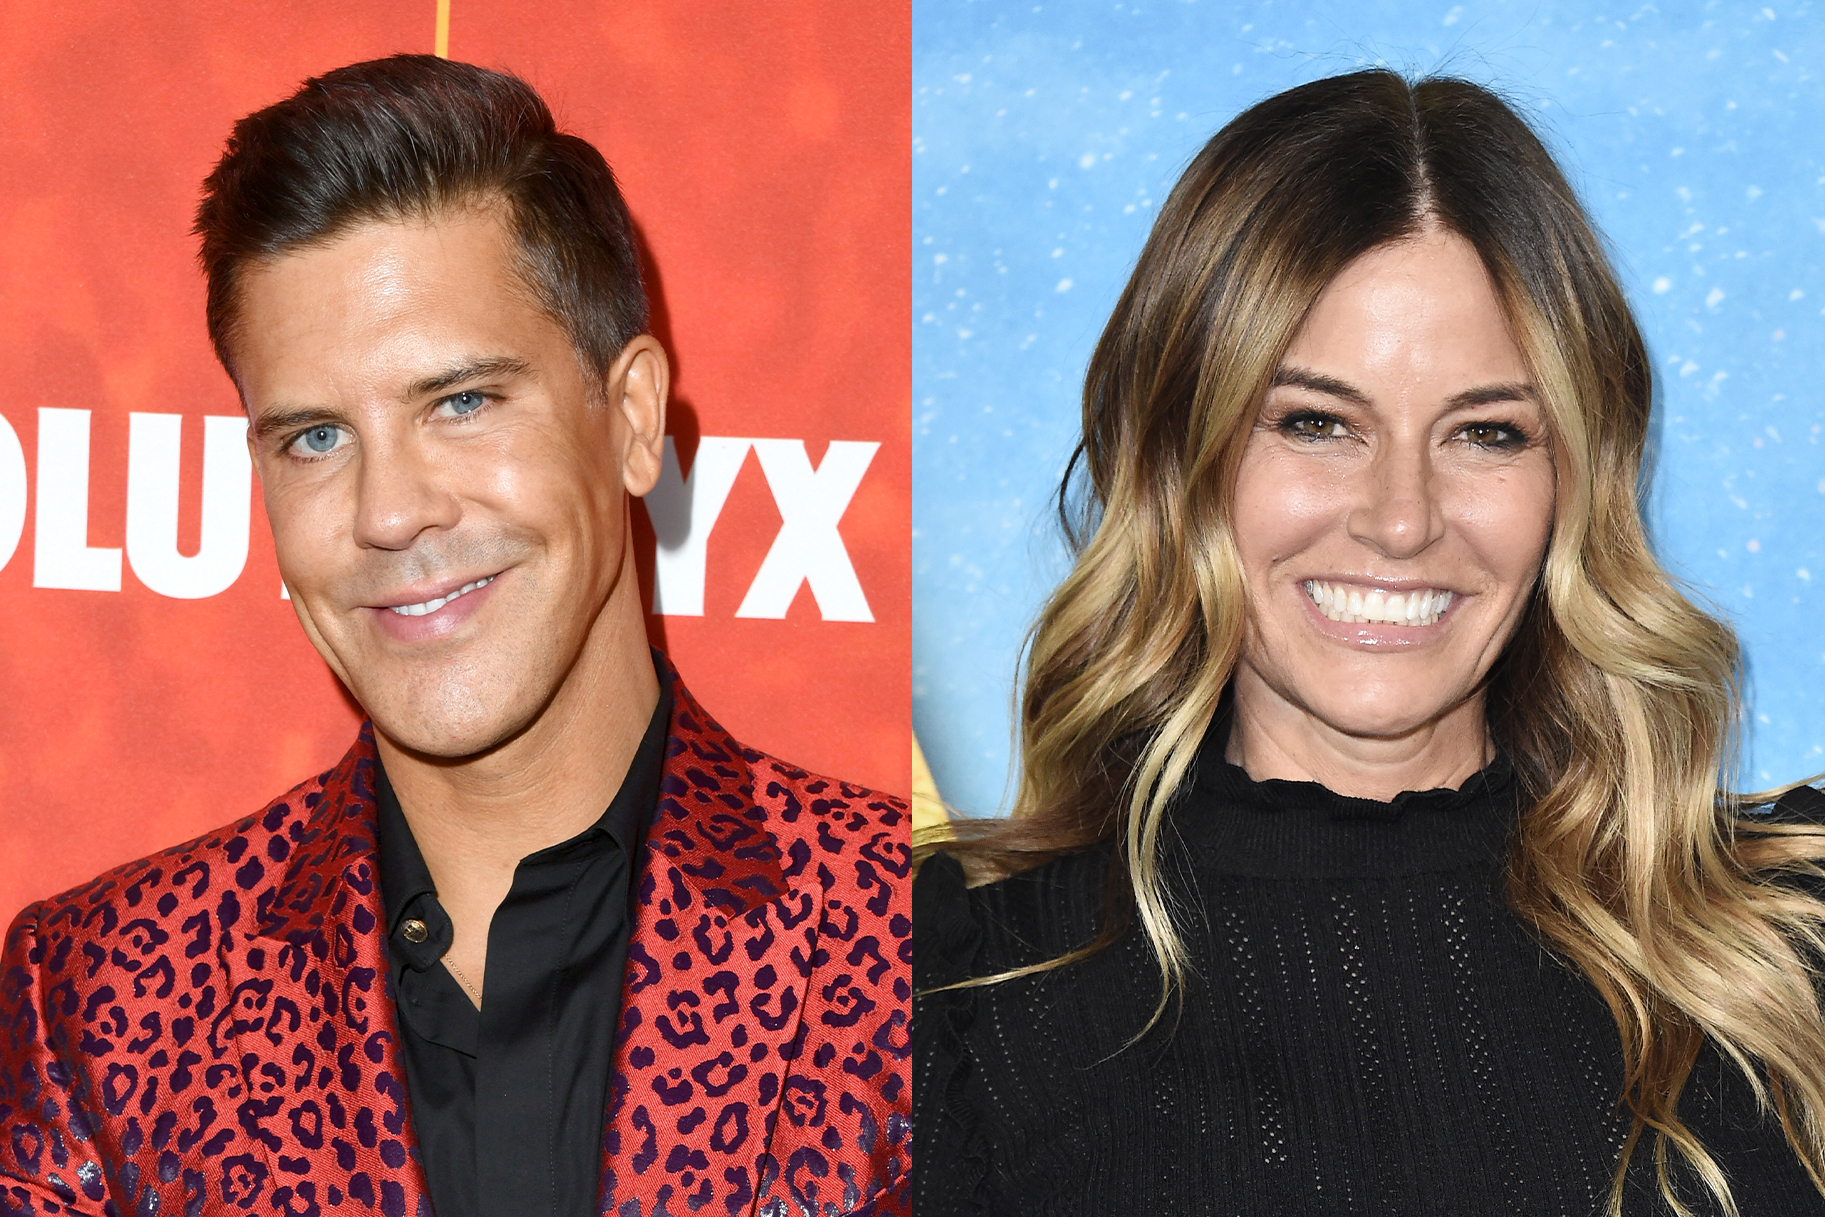 Fredrik Eklund Kelly Bensimon Real Estste Career